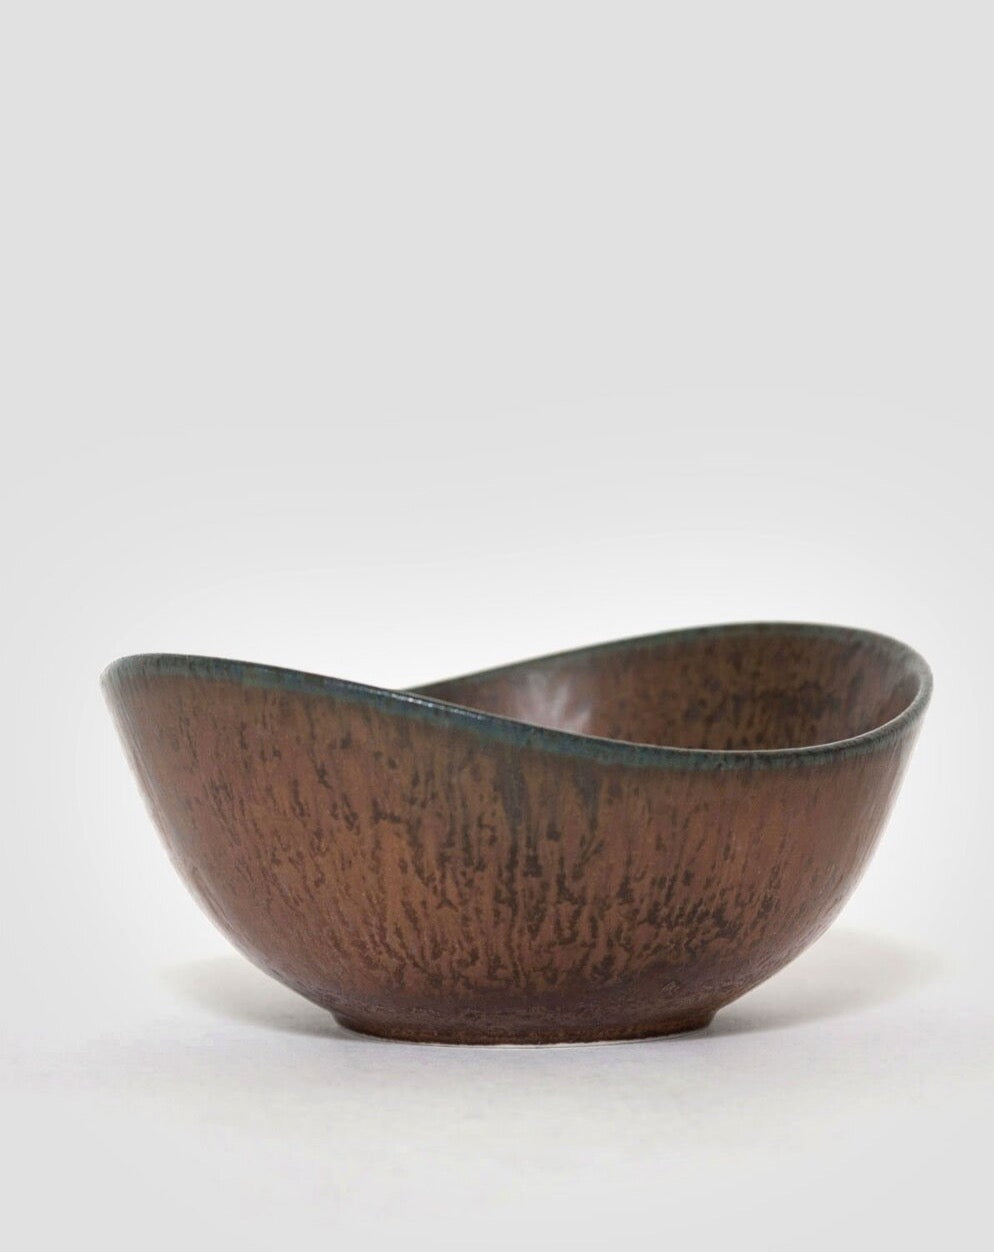 Gunnar Nylund Bowl for Rörstrand, c. 1950